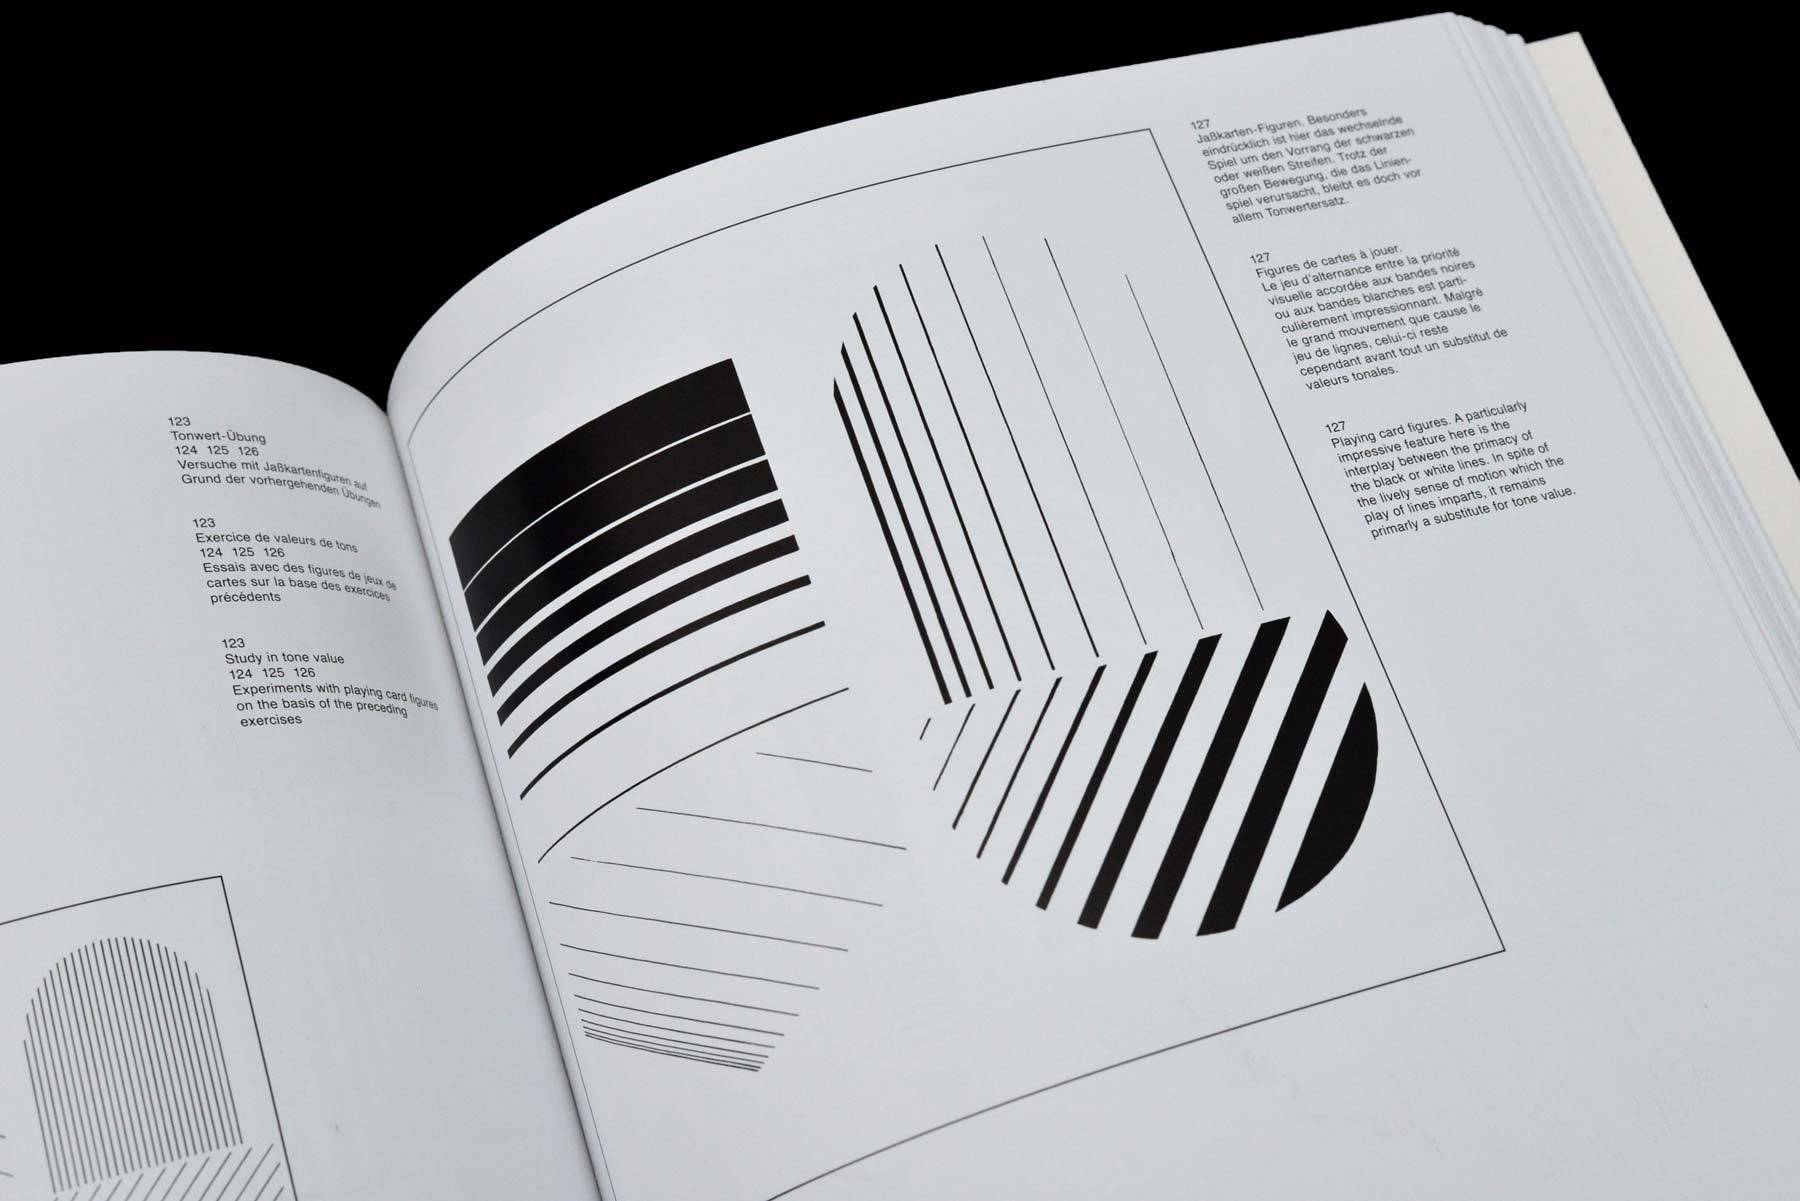 gdfs-library-graphic-design-manual-b